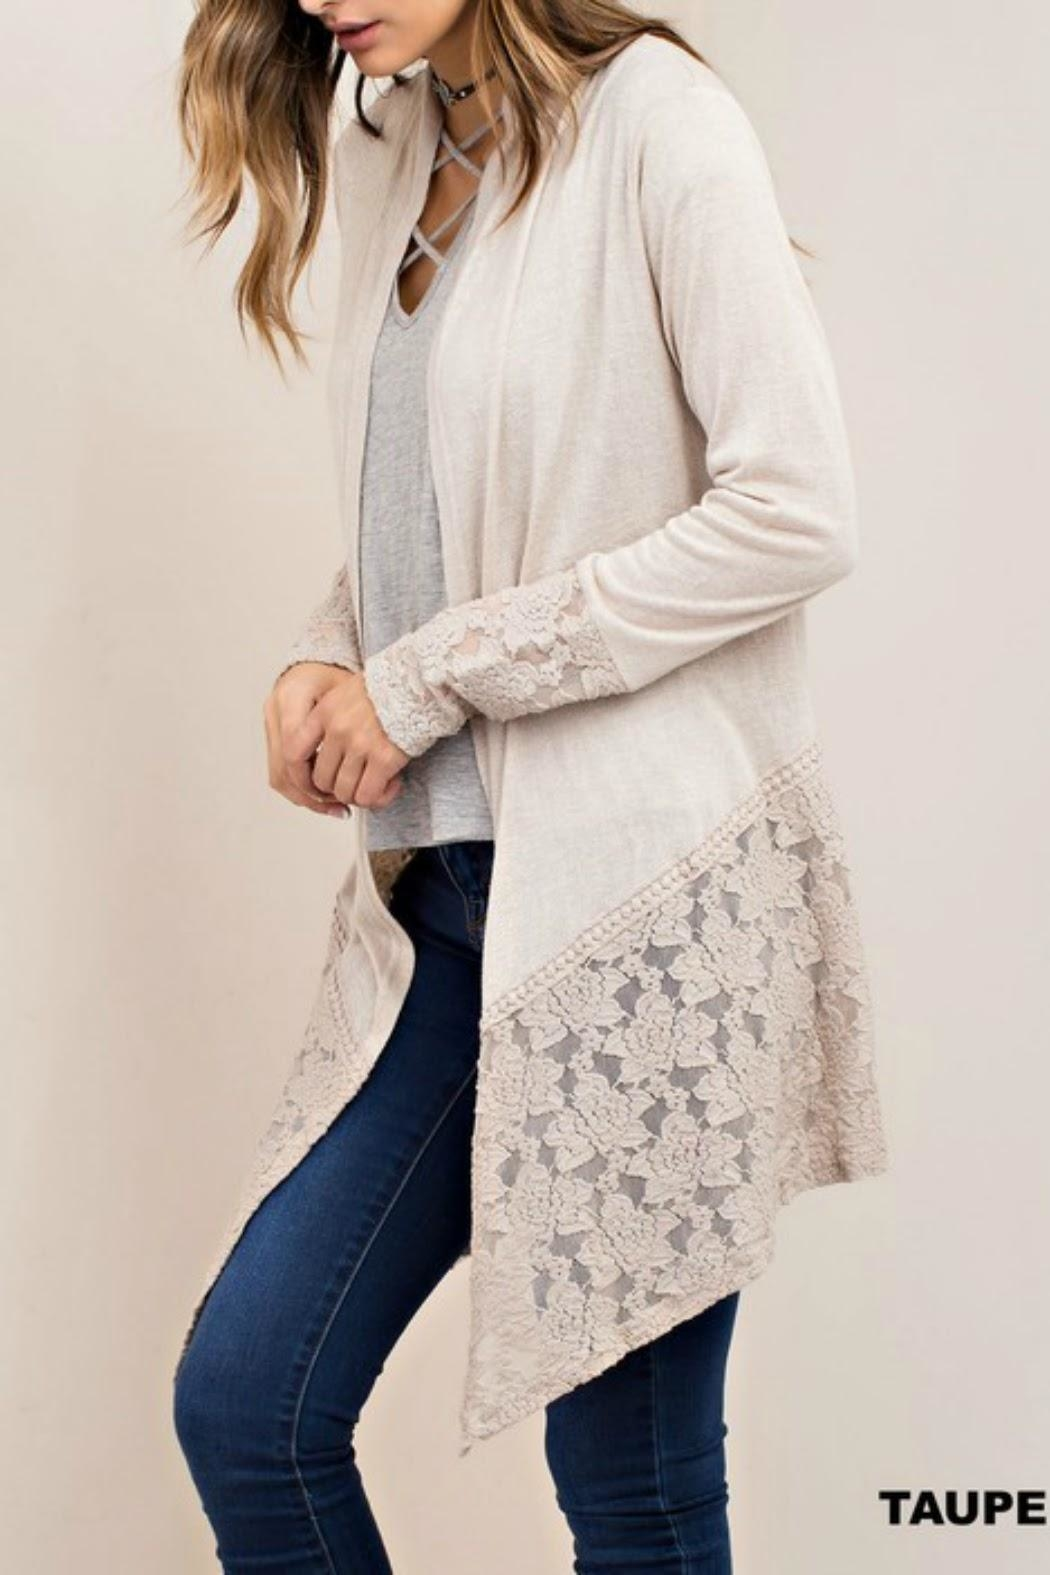 Classic Trendz Boutique Taupe Lace Cardigan - Main Image